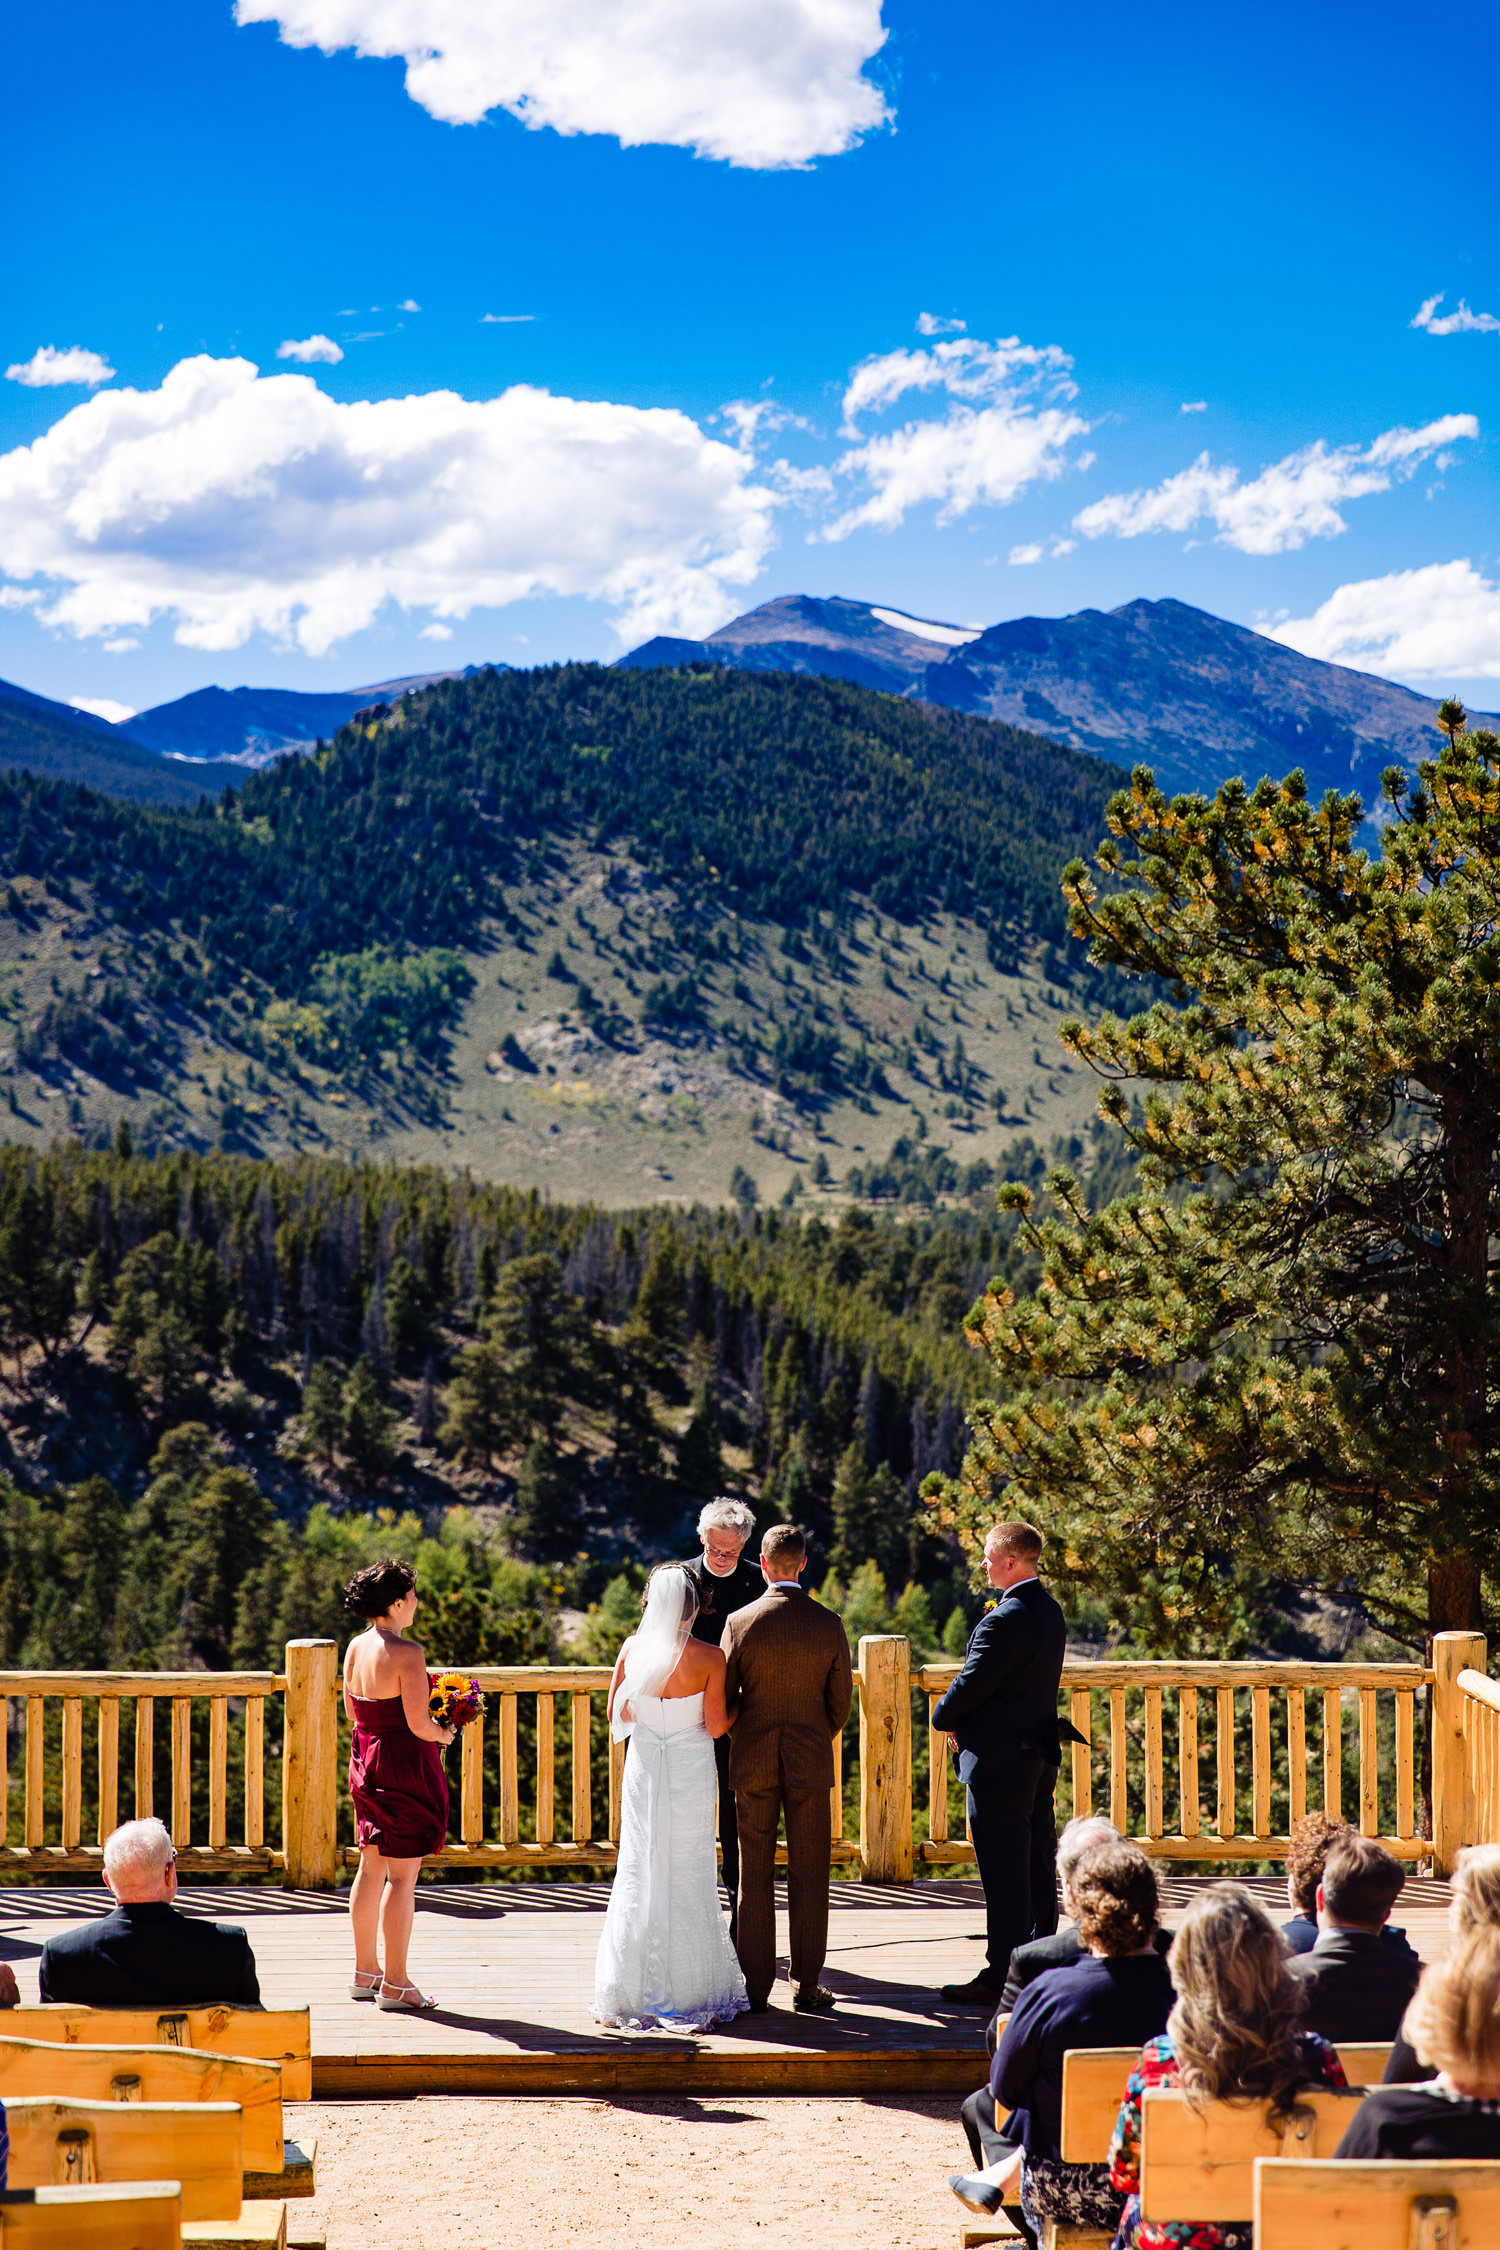 ymca-of-the-rockies-wedding-estes-park-014.jpg